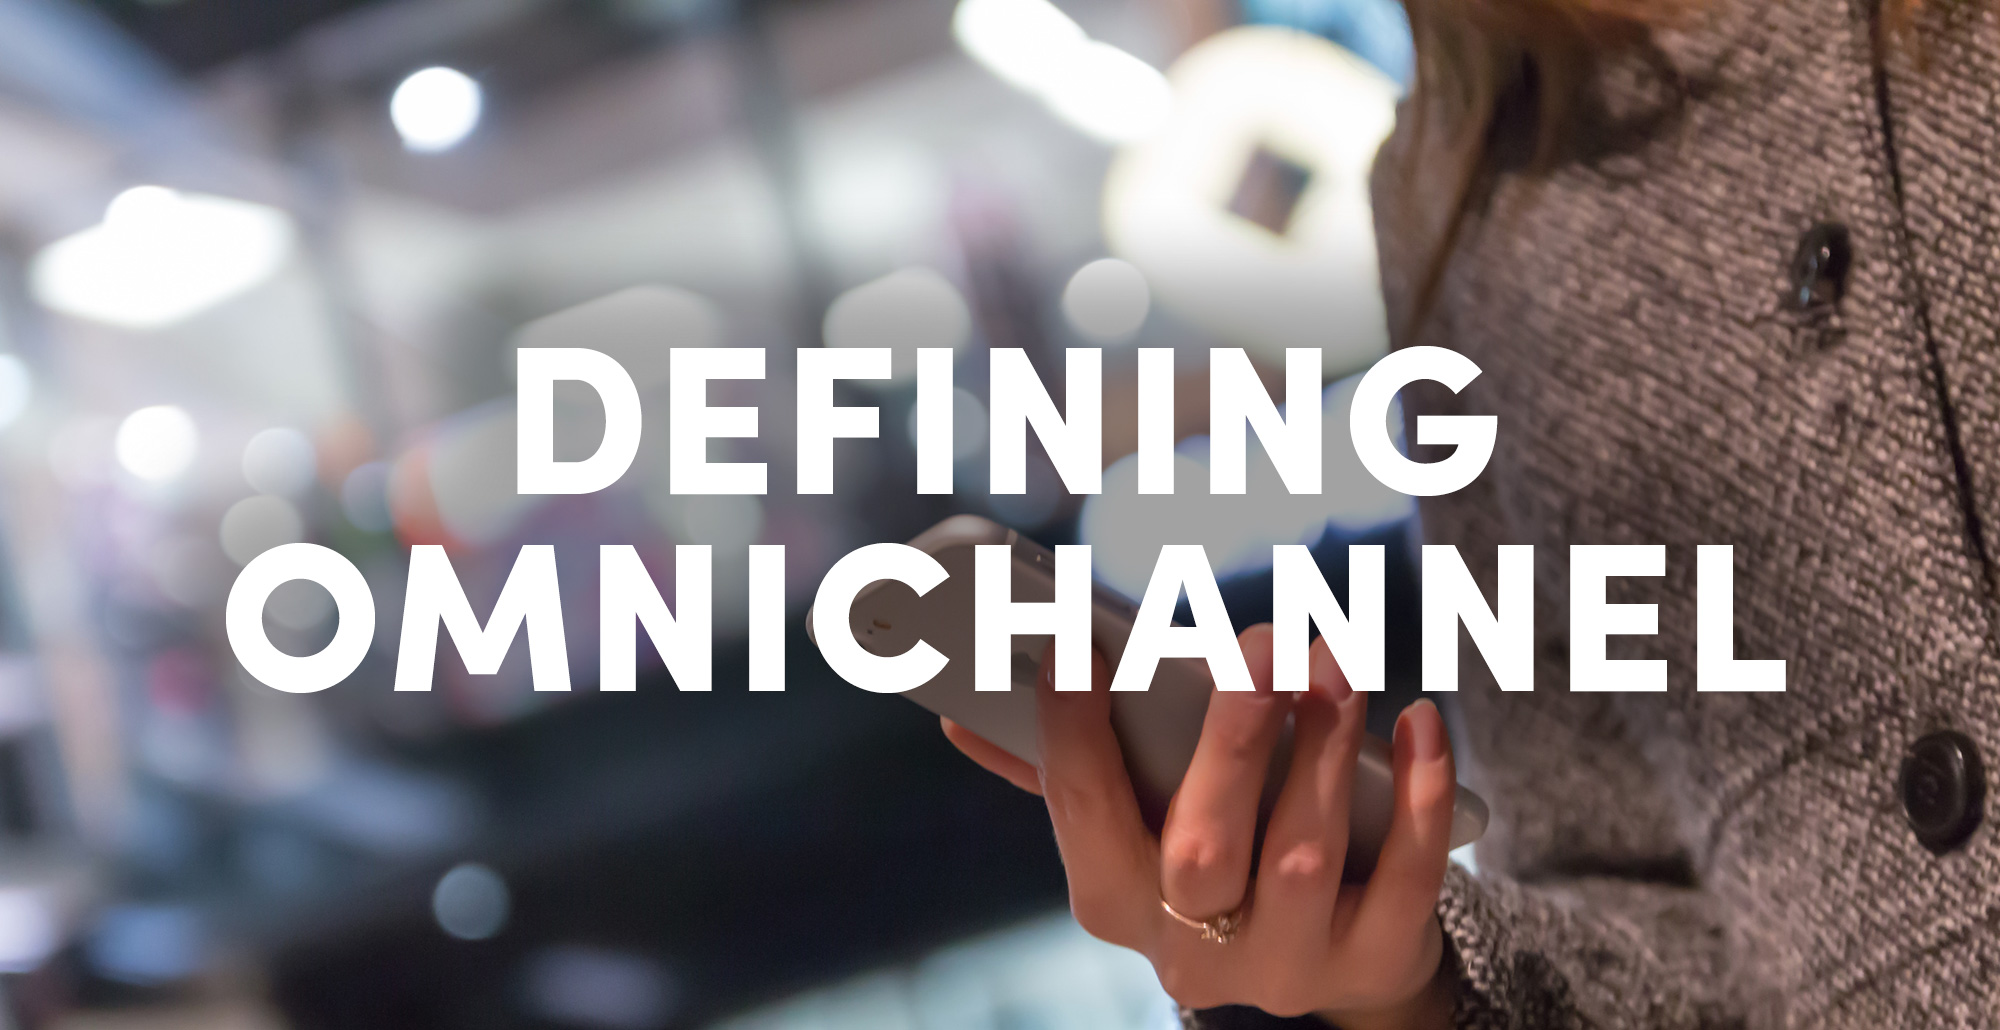 What is Omnichannel?